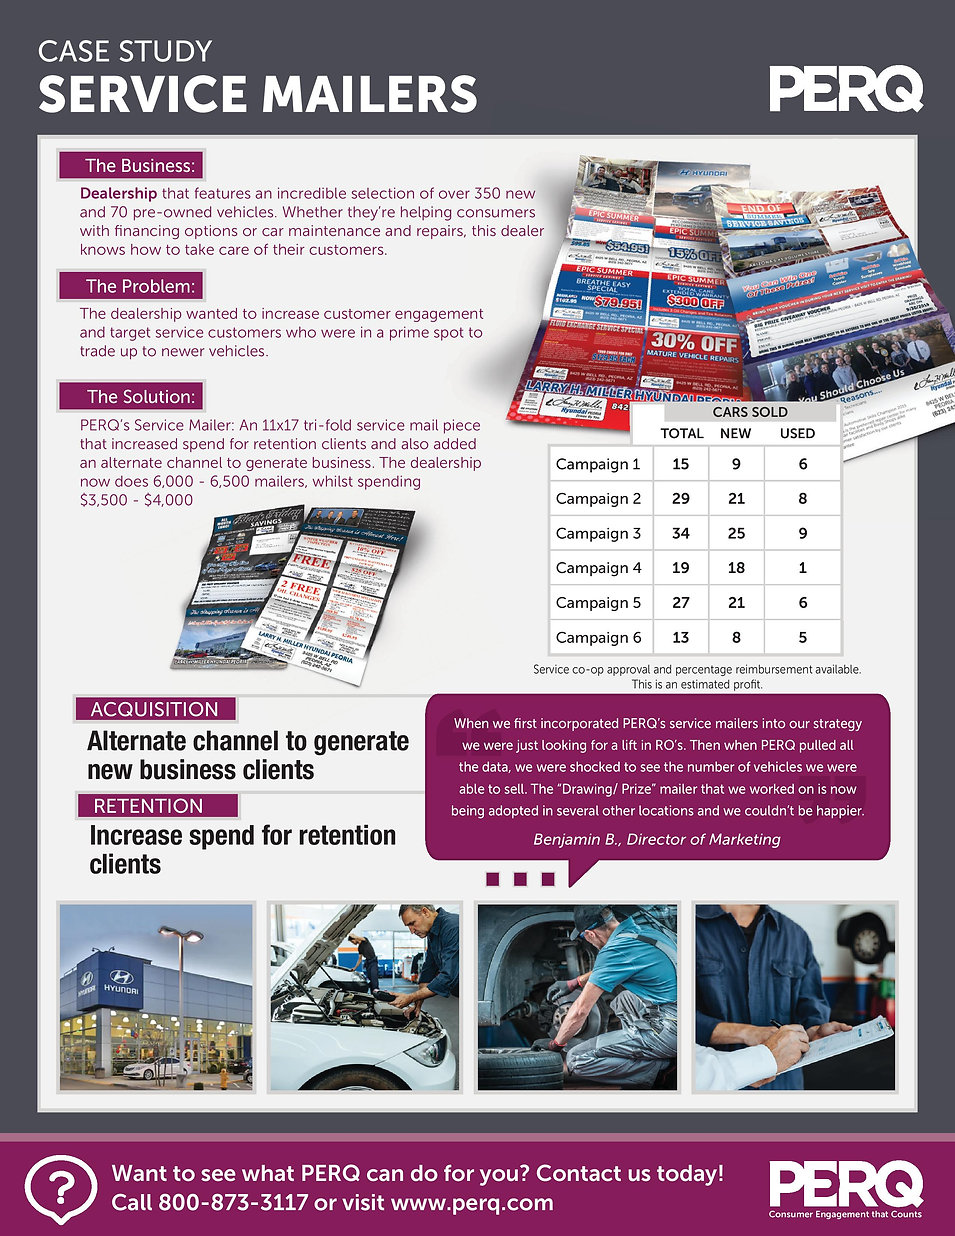 ServiceMailer-CaseStudy-page-001.jpg